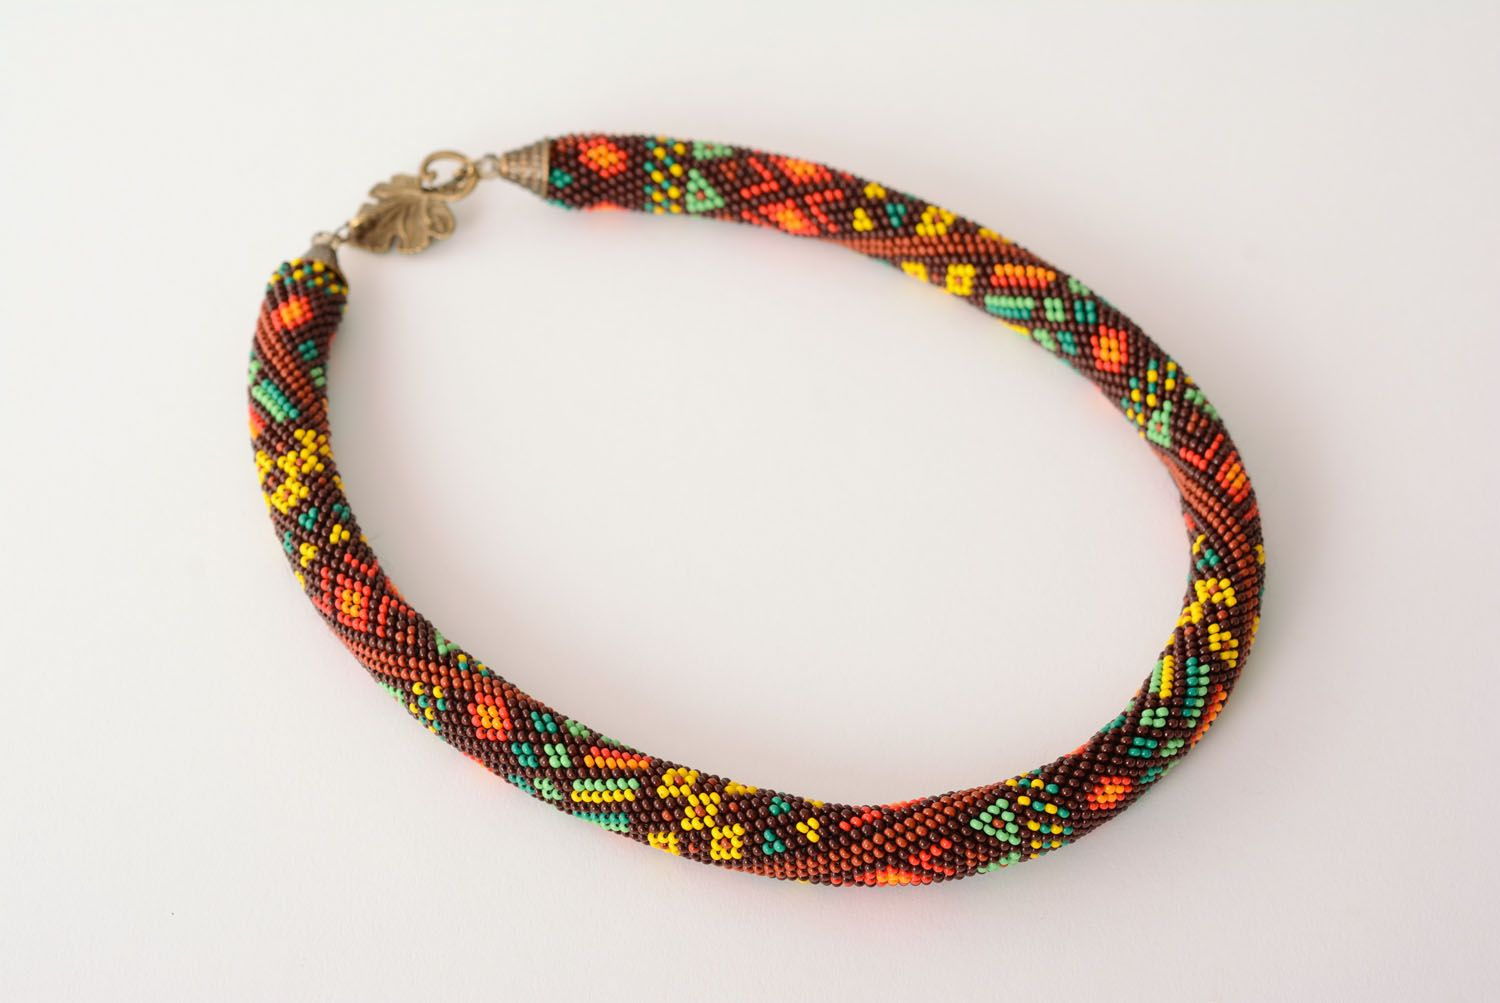 Beaded cord necklace photo 3